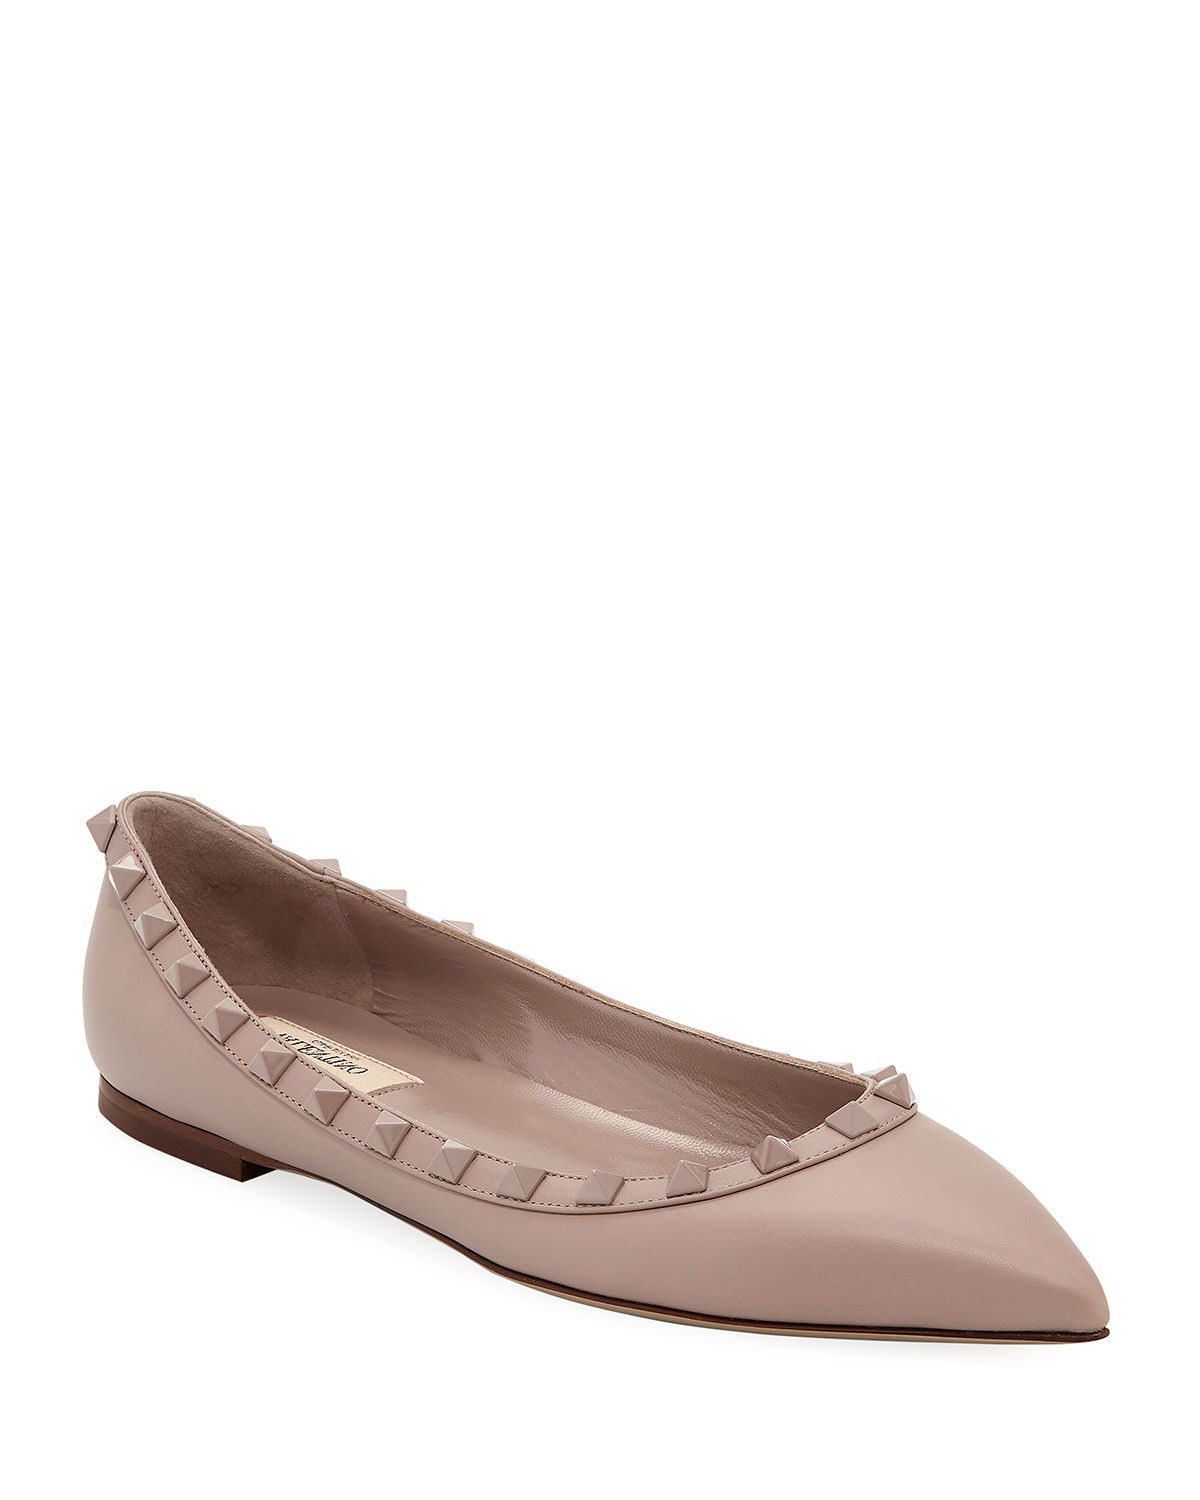 d9d3a2e54ac5 Valentino Garavani Rockstud Smooth Calf Leather Ballet Flats ...